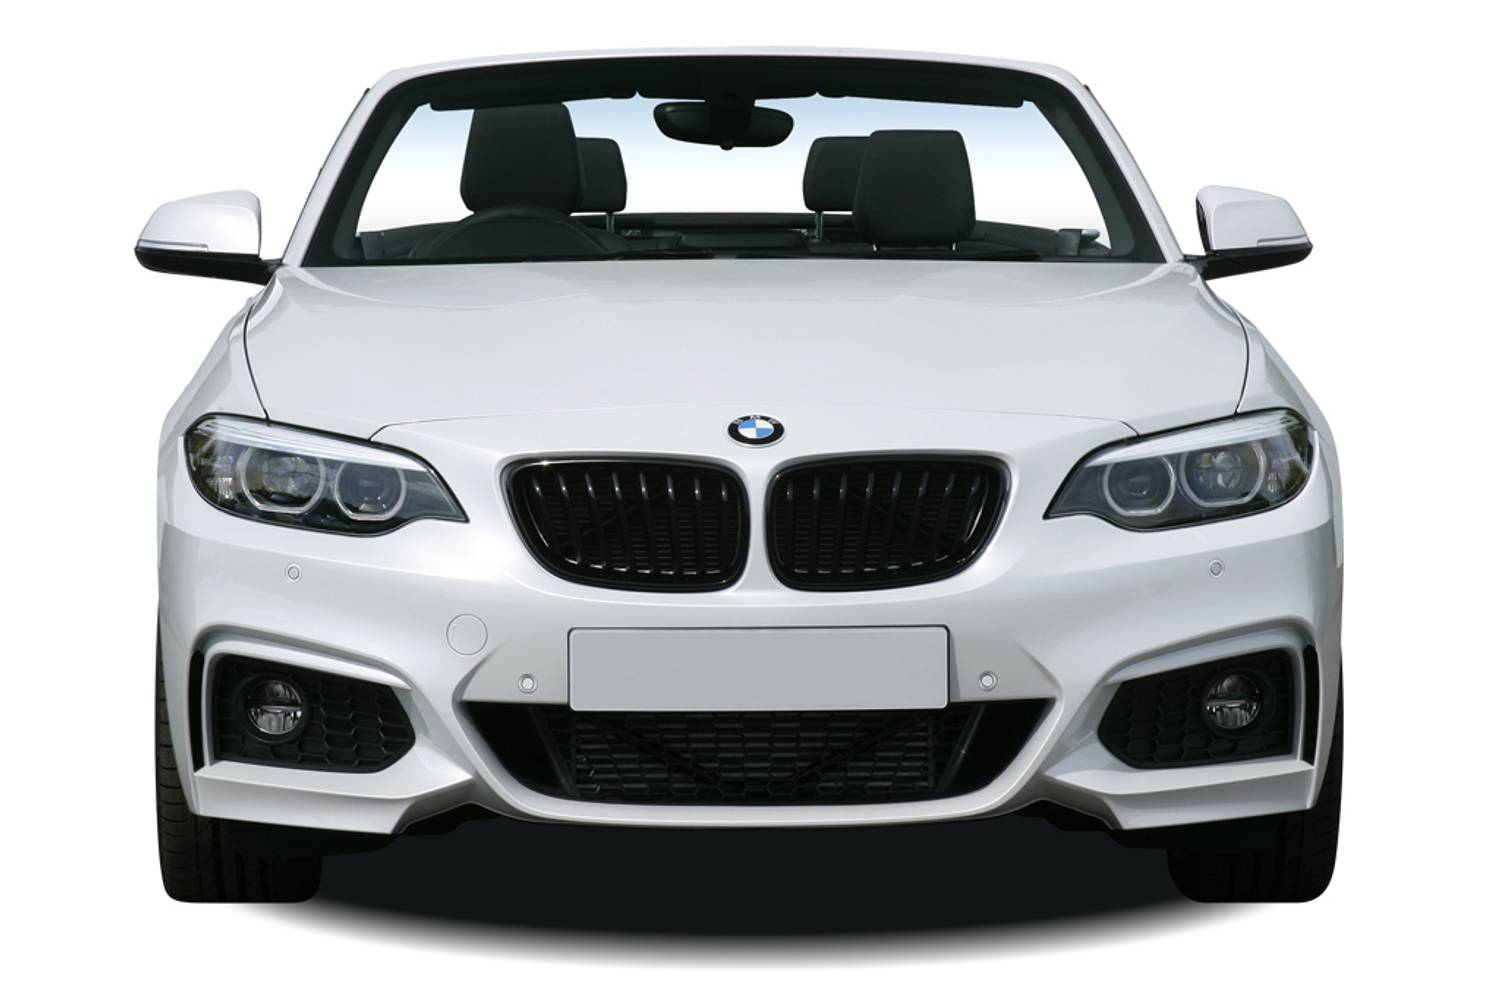 BMW 2 Series Convertible 2dr [Nav] Front